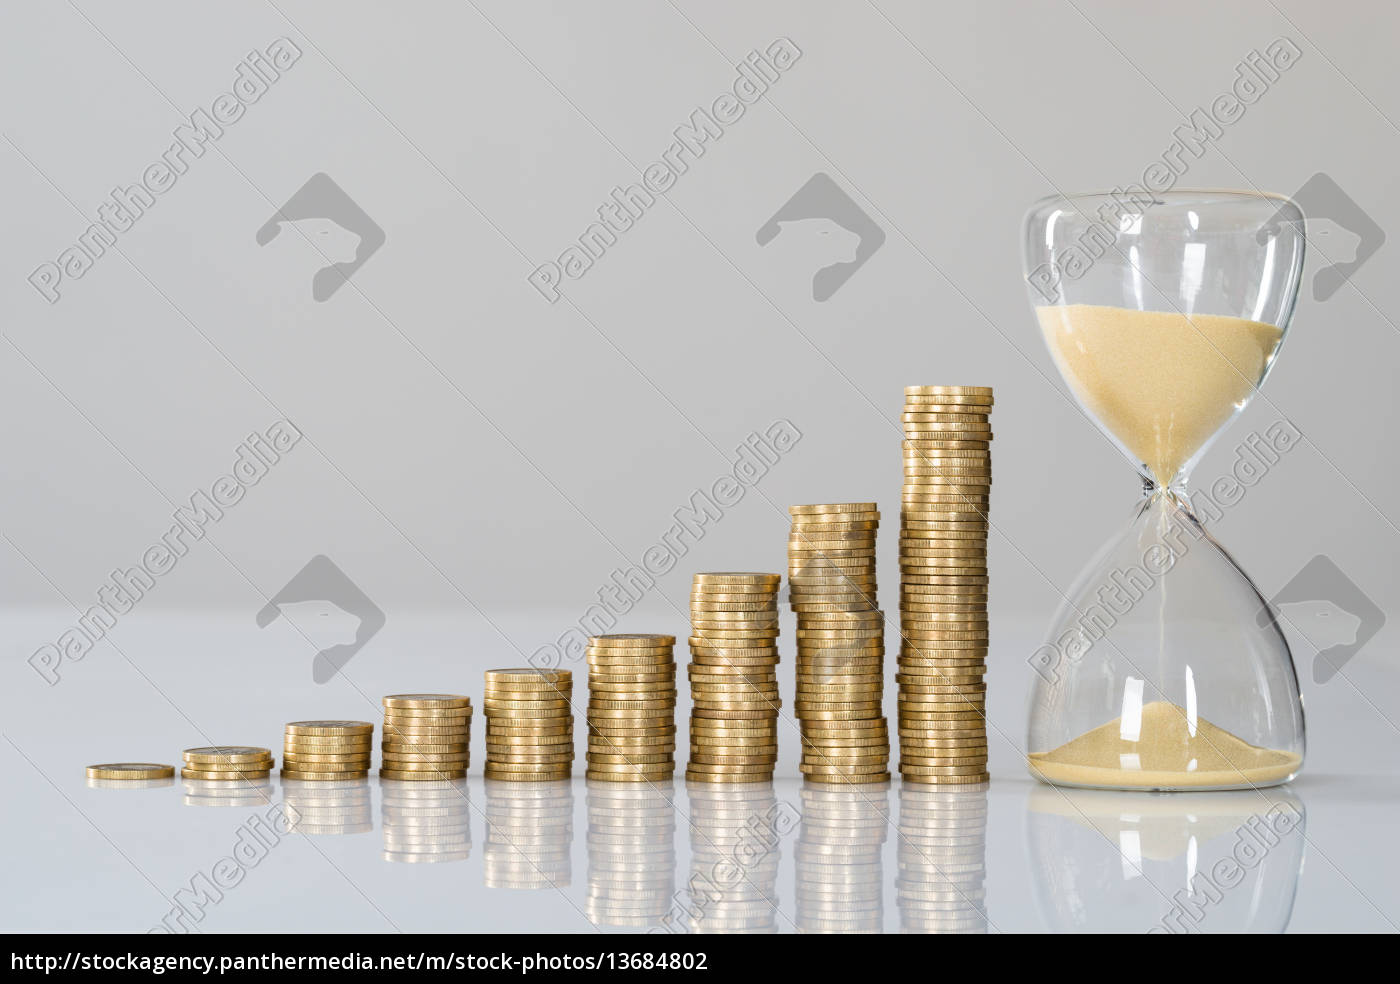 growth, chart, and, hourglass - 13684802